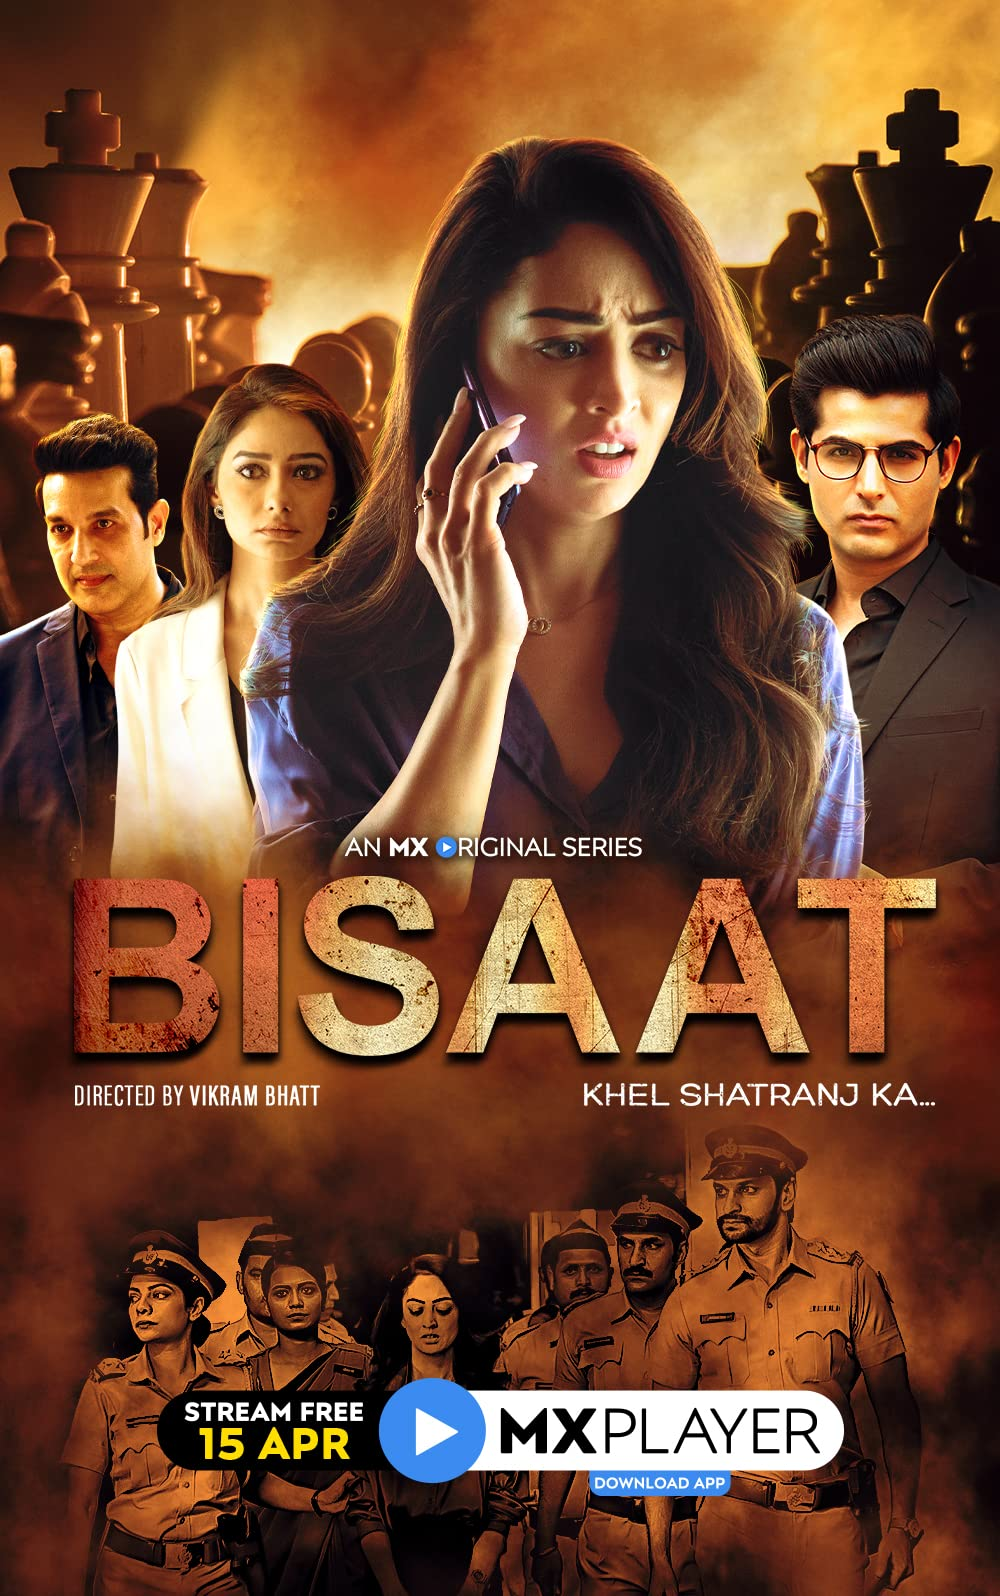 Bisaat: Khel Shatranj Ka 2021 S01 Hindi MX Original Complete Web Series 720p HDRip 1.52GB Download